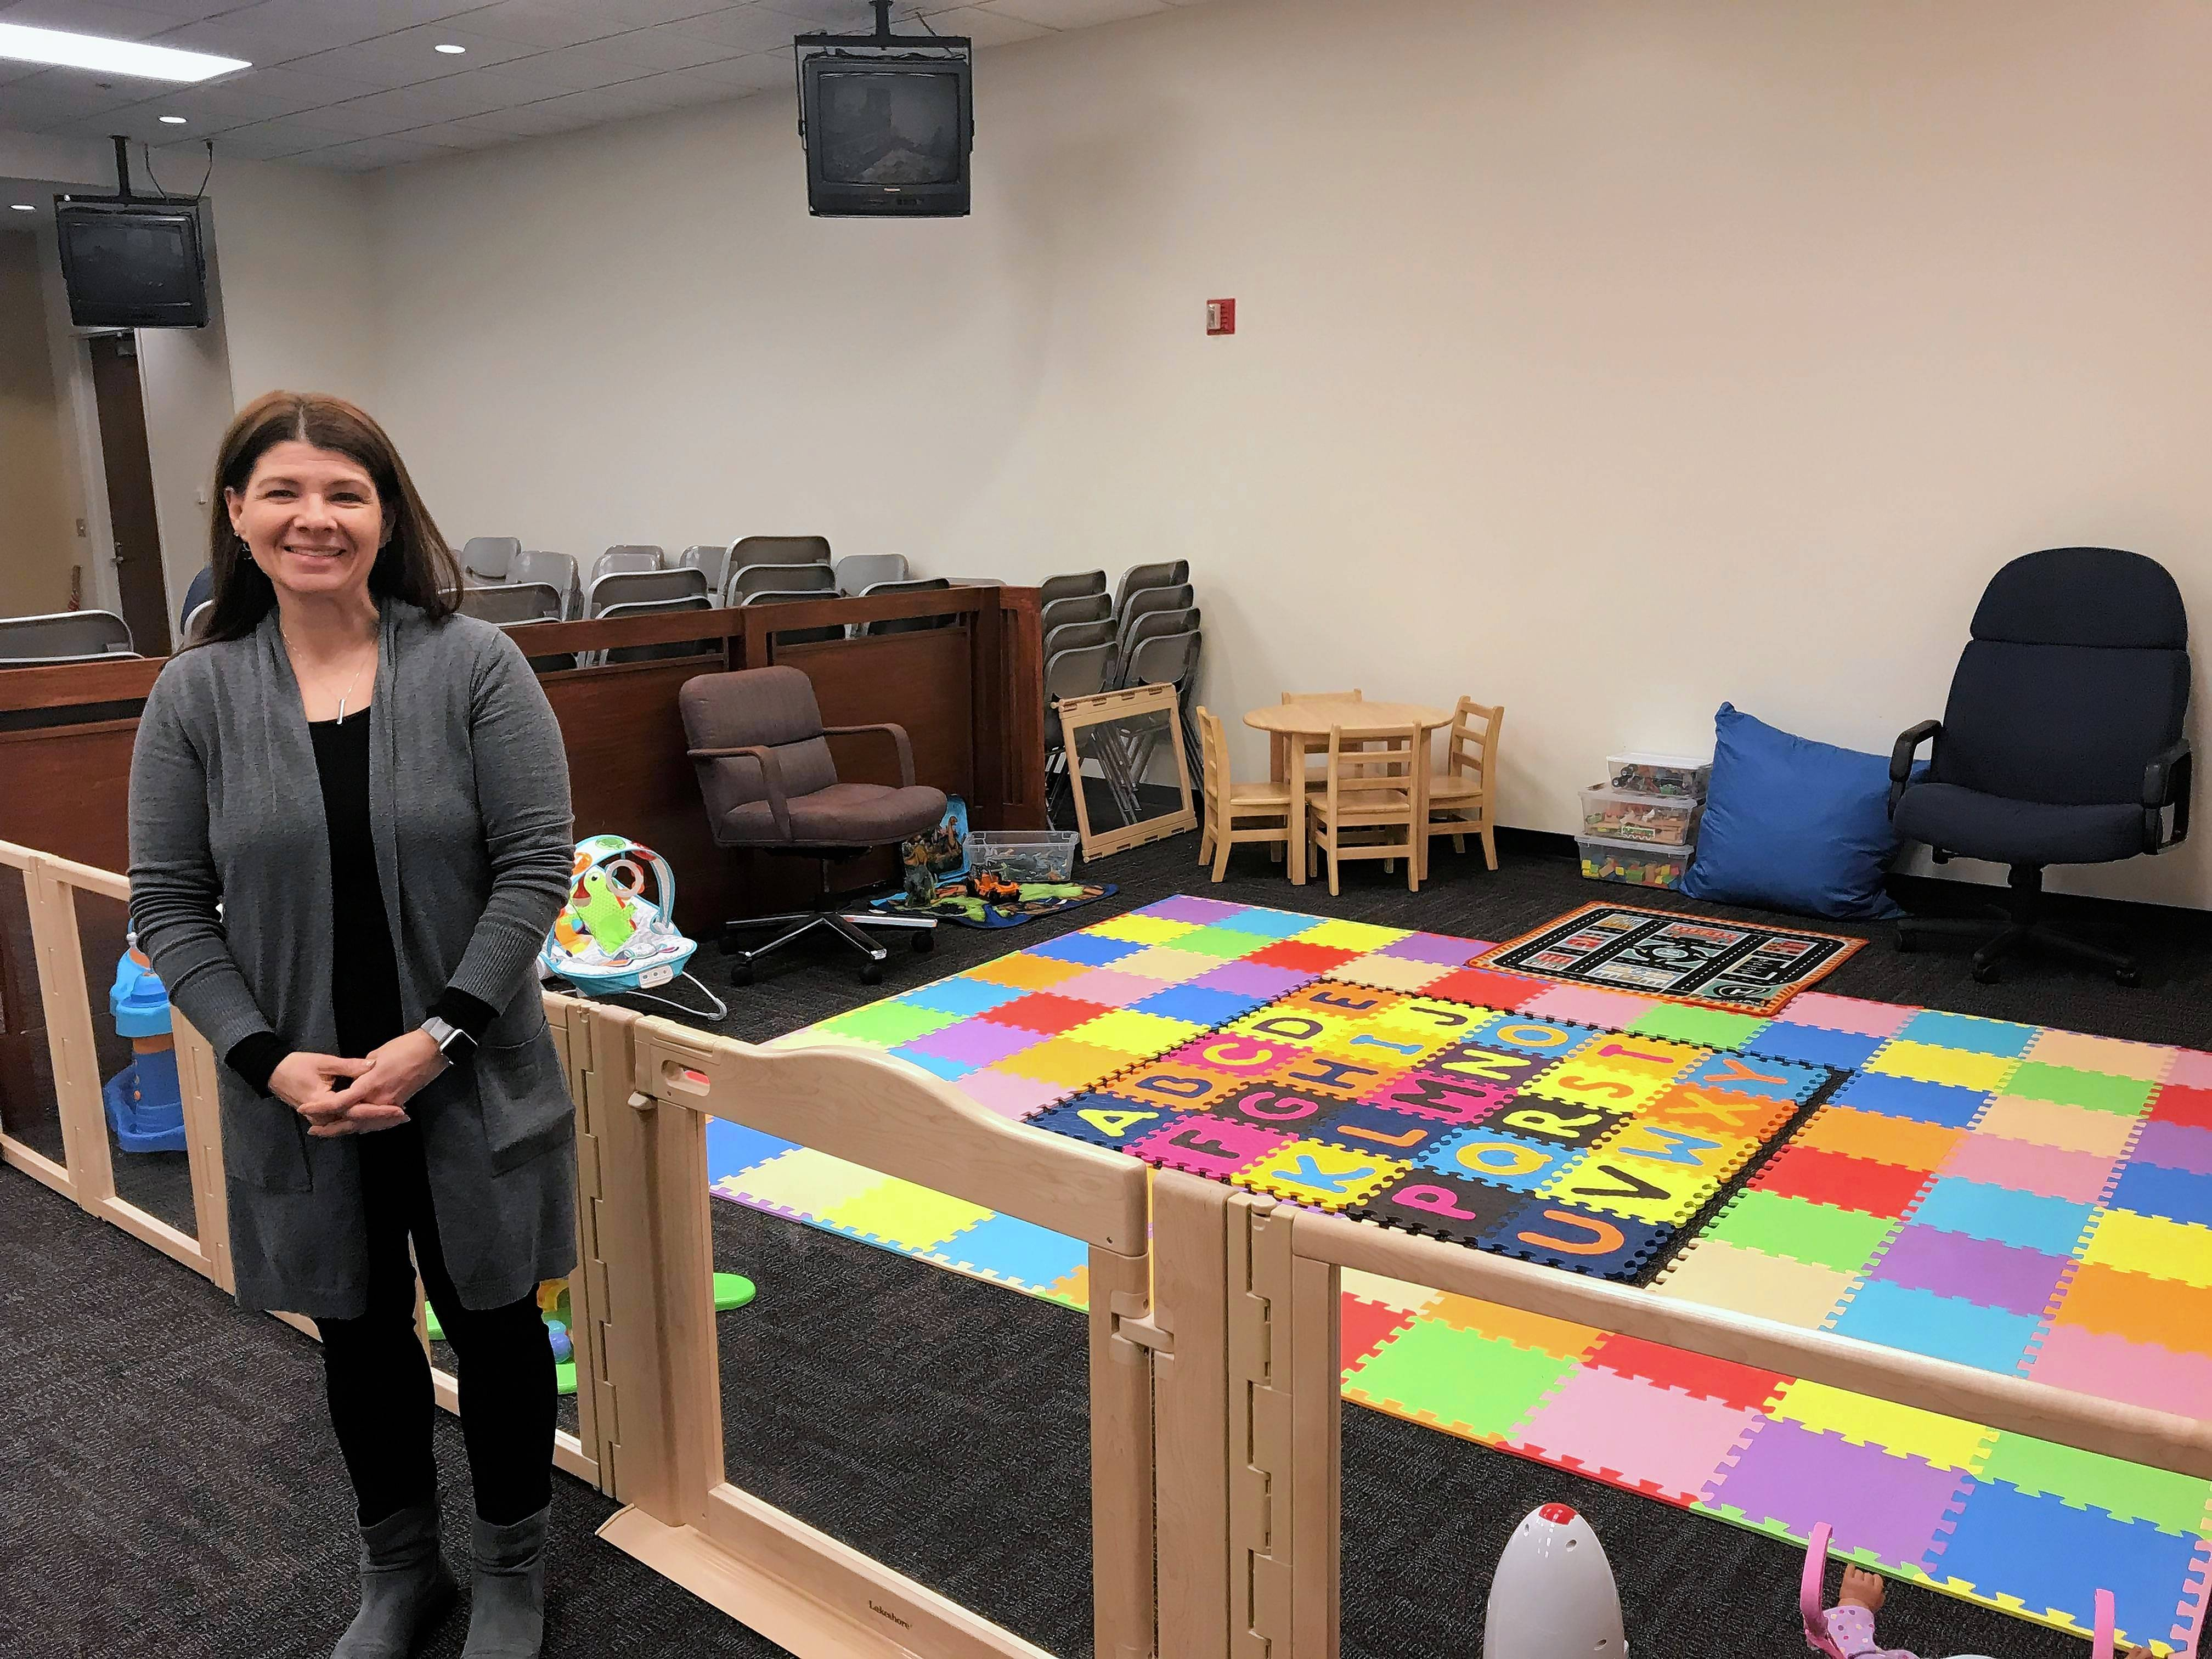 Ann Lobb, director of the Children's Waiting Room at the Kane County Judicial Center, in the waiting room's temporary home in a courtroom. Its usual space was damaged by a flood from a broken sprinkler.